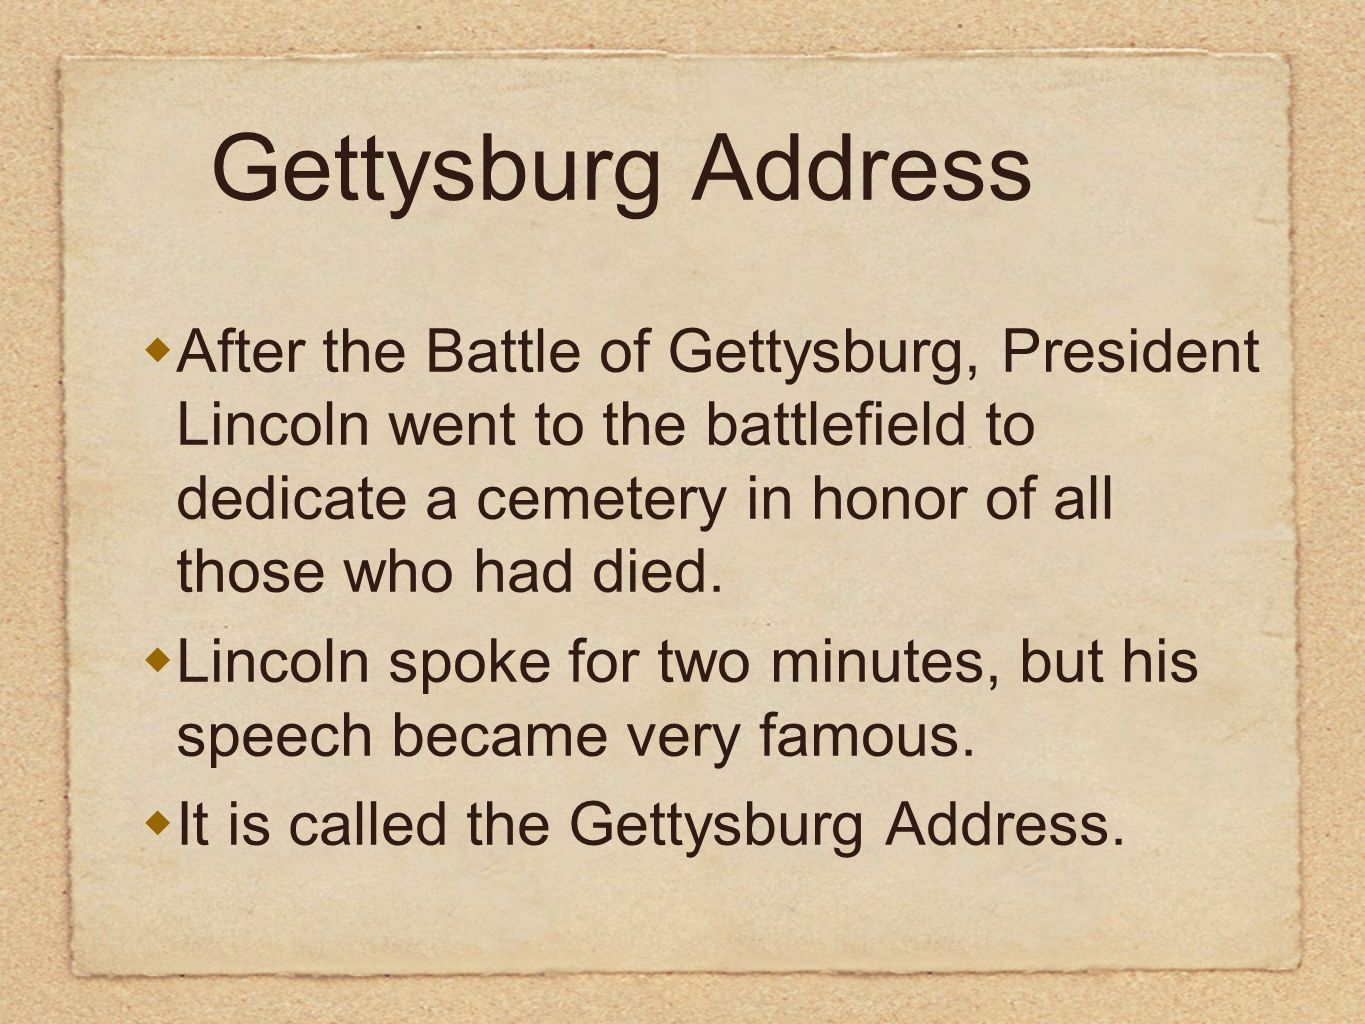 Gettysburg Address After the Battle of Gettysburg, President Lincoln went to the battlefield to dedicate a cemetery in honor of all those who had died